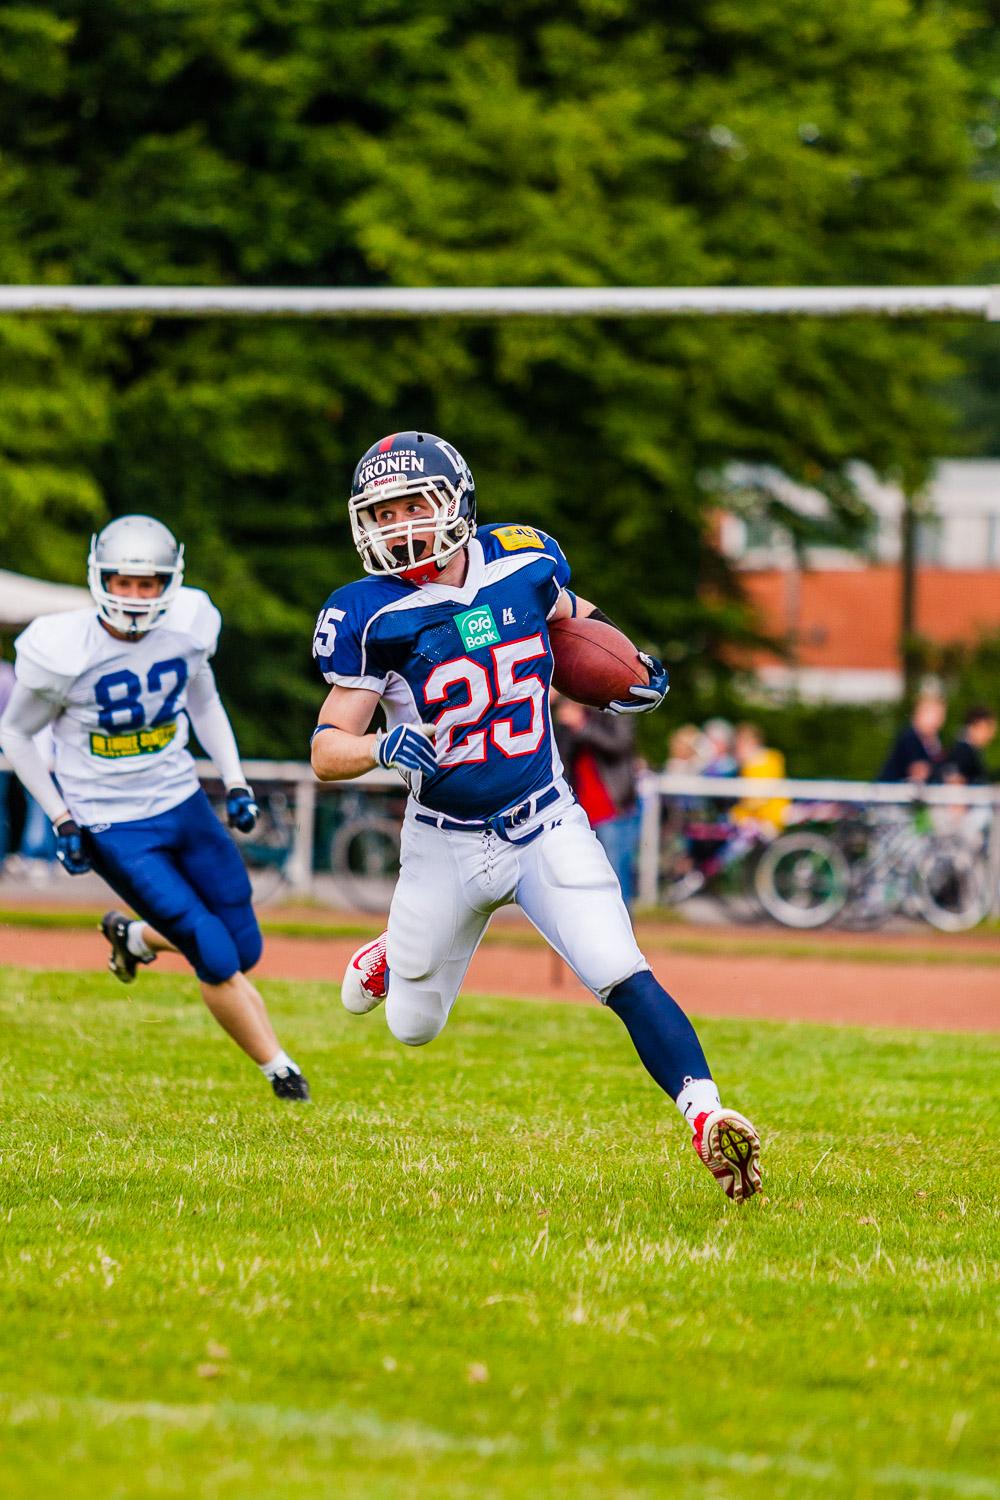 Reginalliga NRW 2013 - Dortmund Giants vs. Bochum Cadets